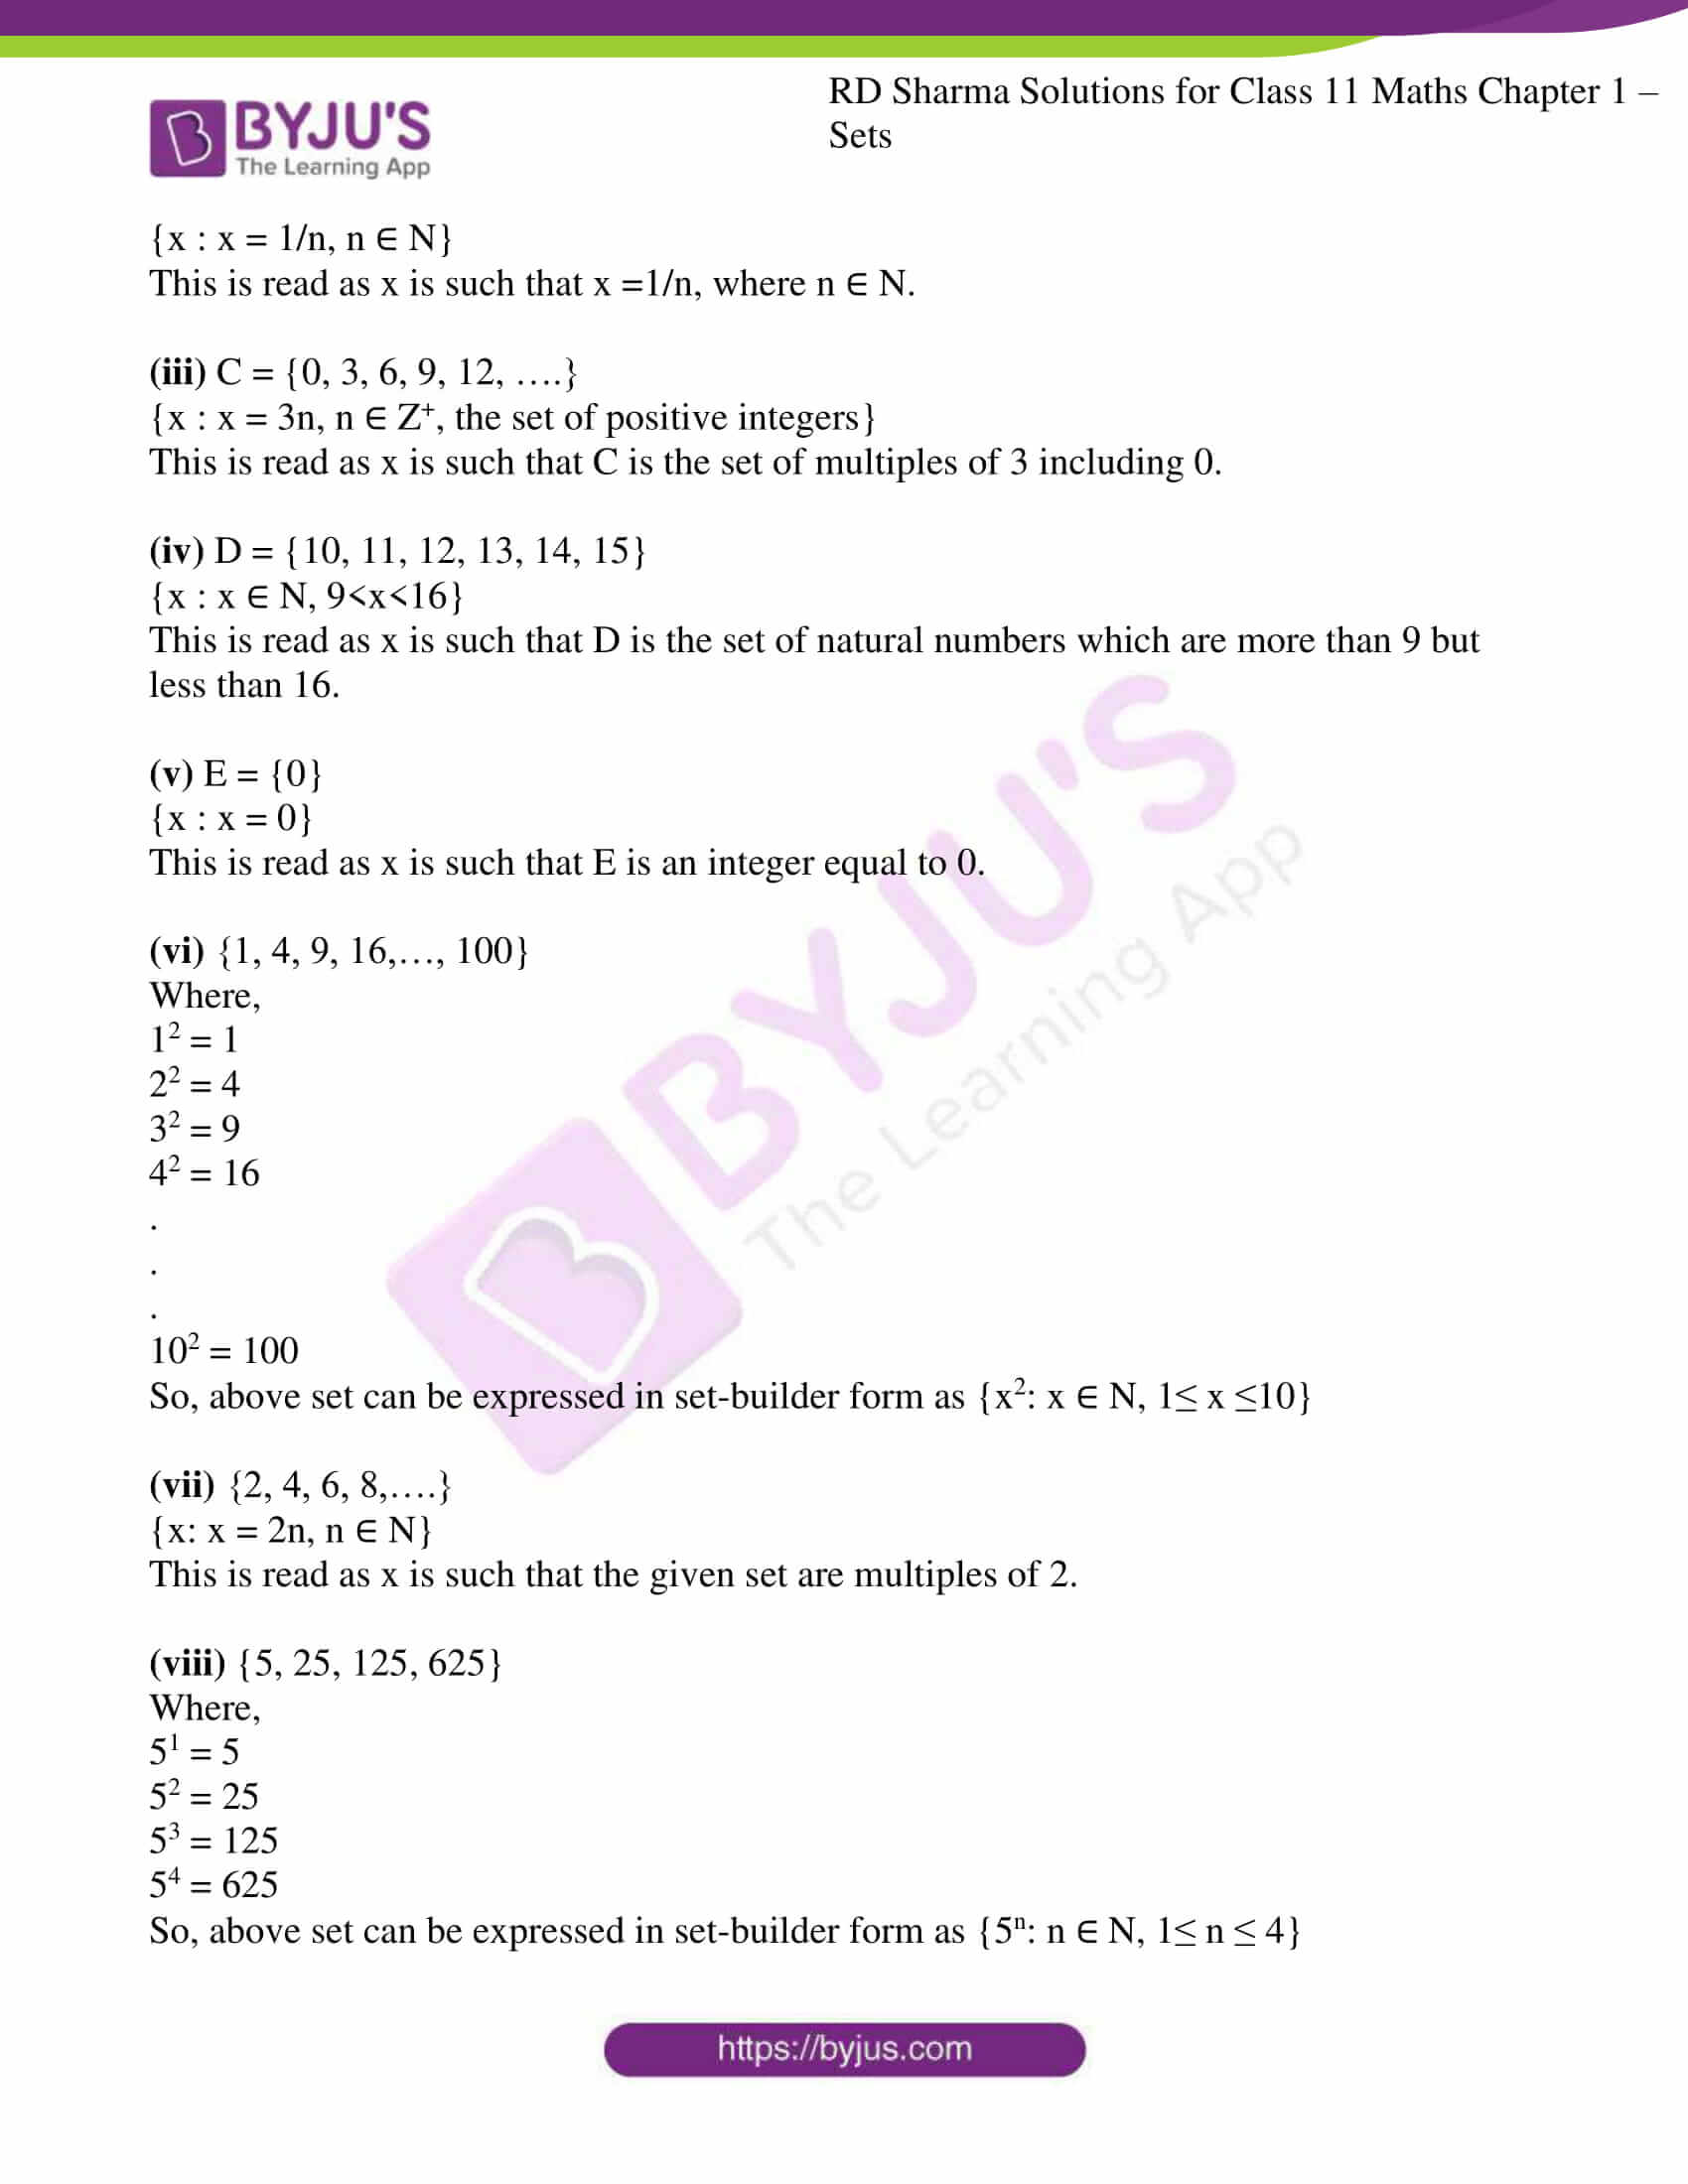 rd sharma class 11 maths ch 1 sets ex 2 3